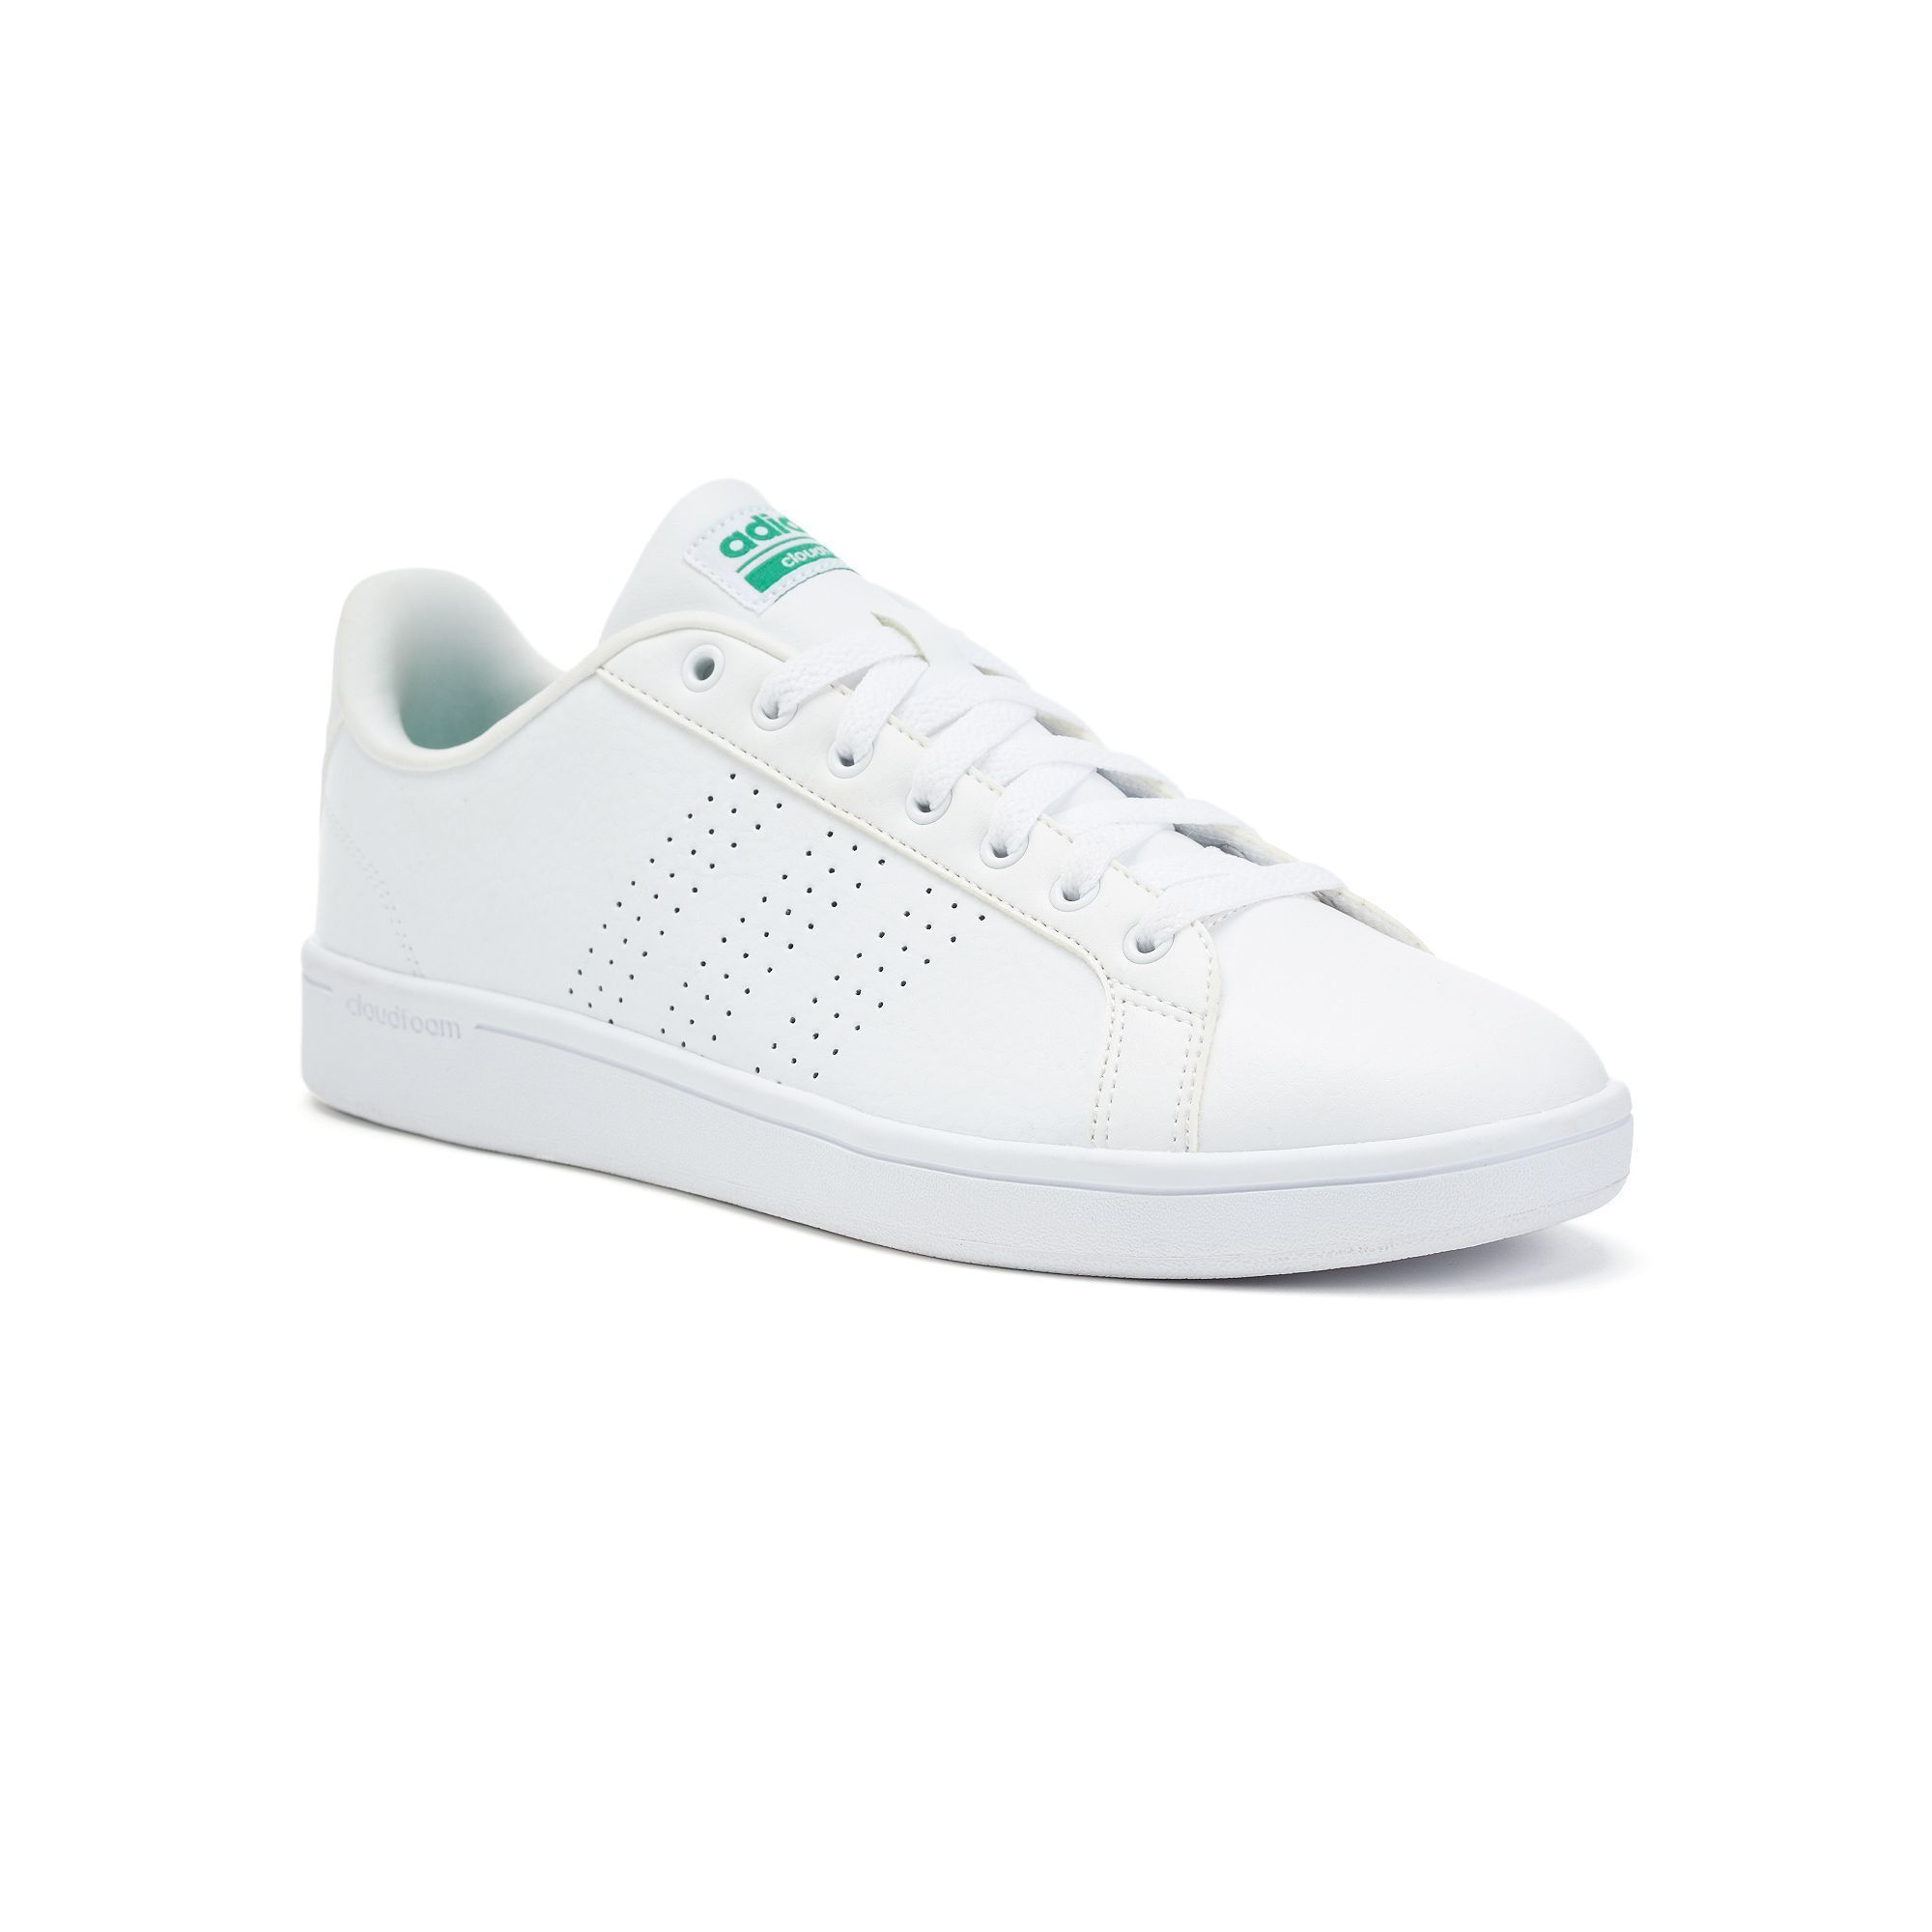 adidas cloudfoam advantage mens